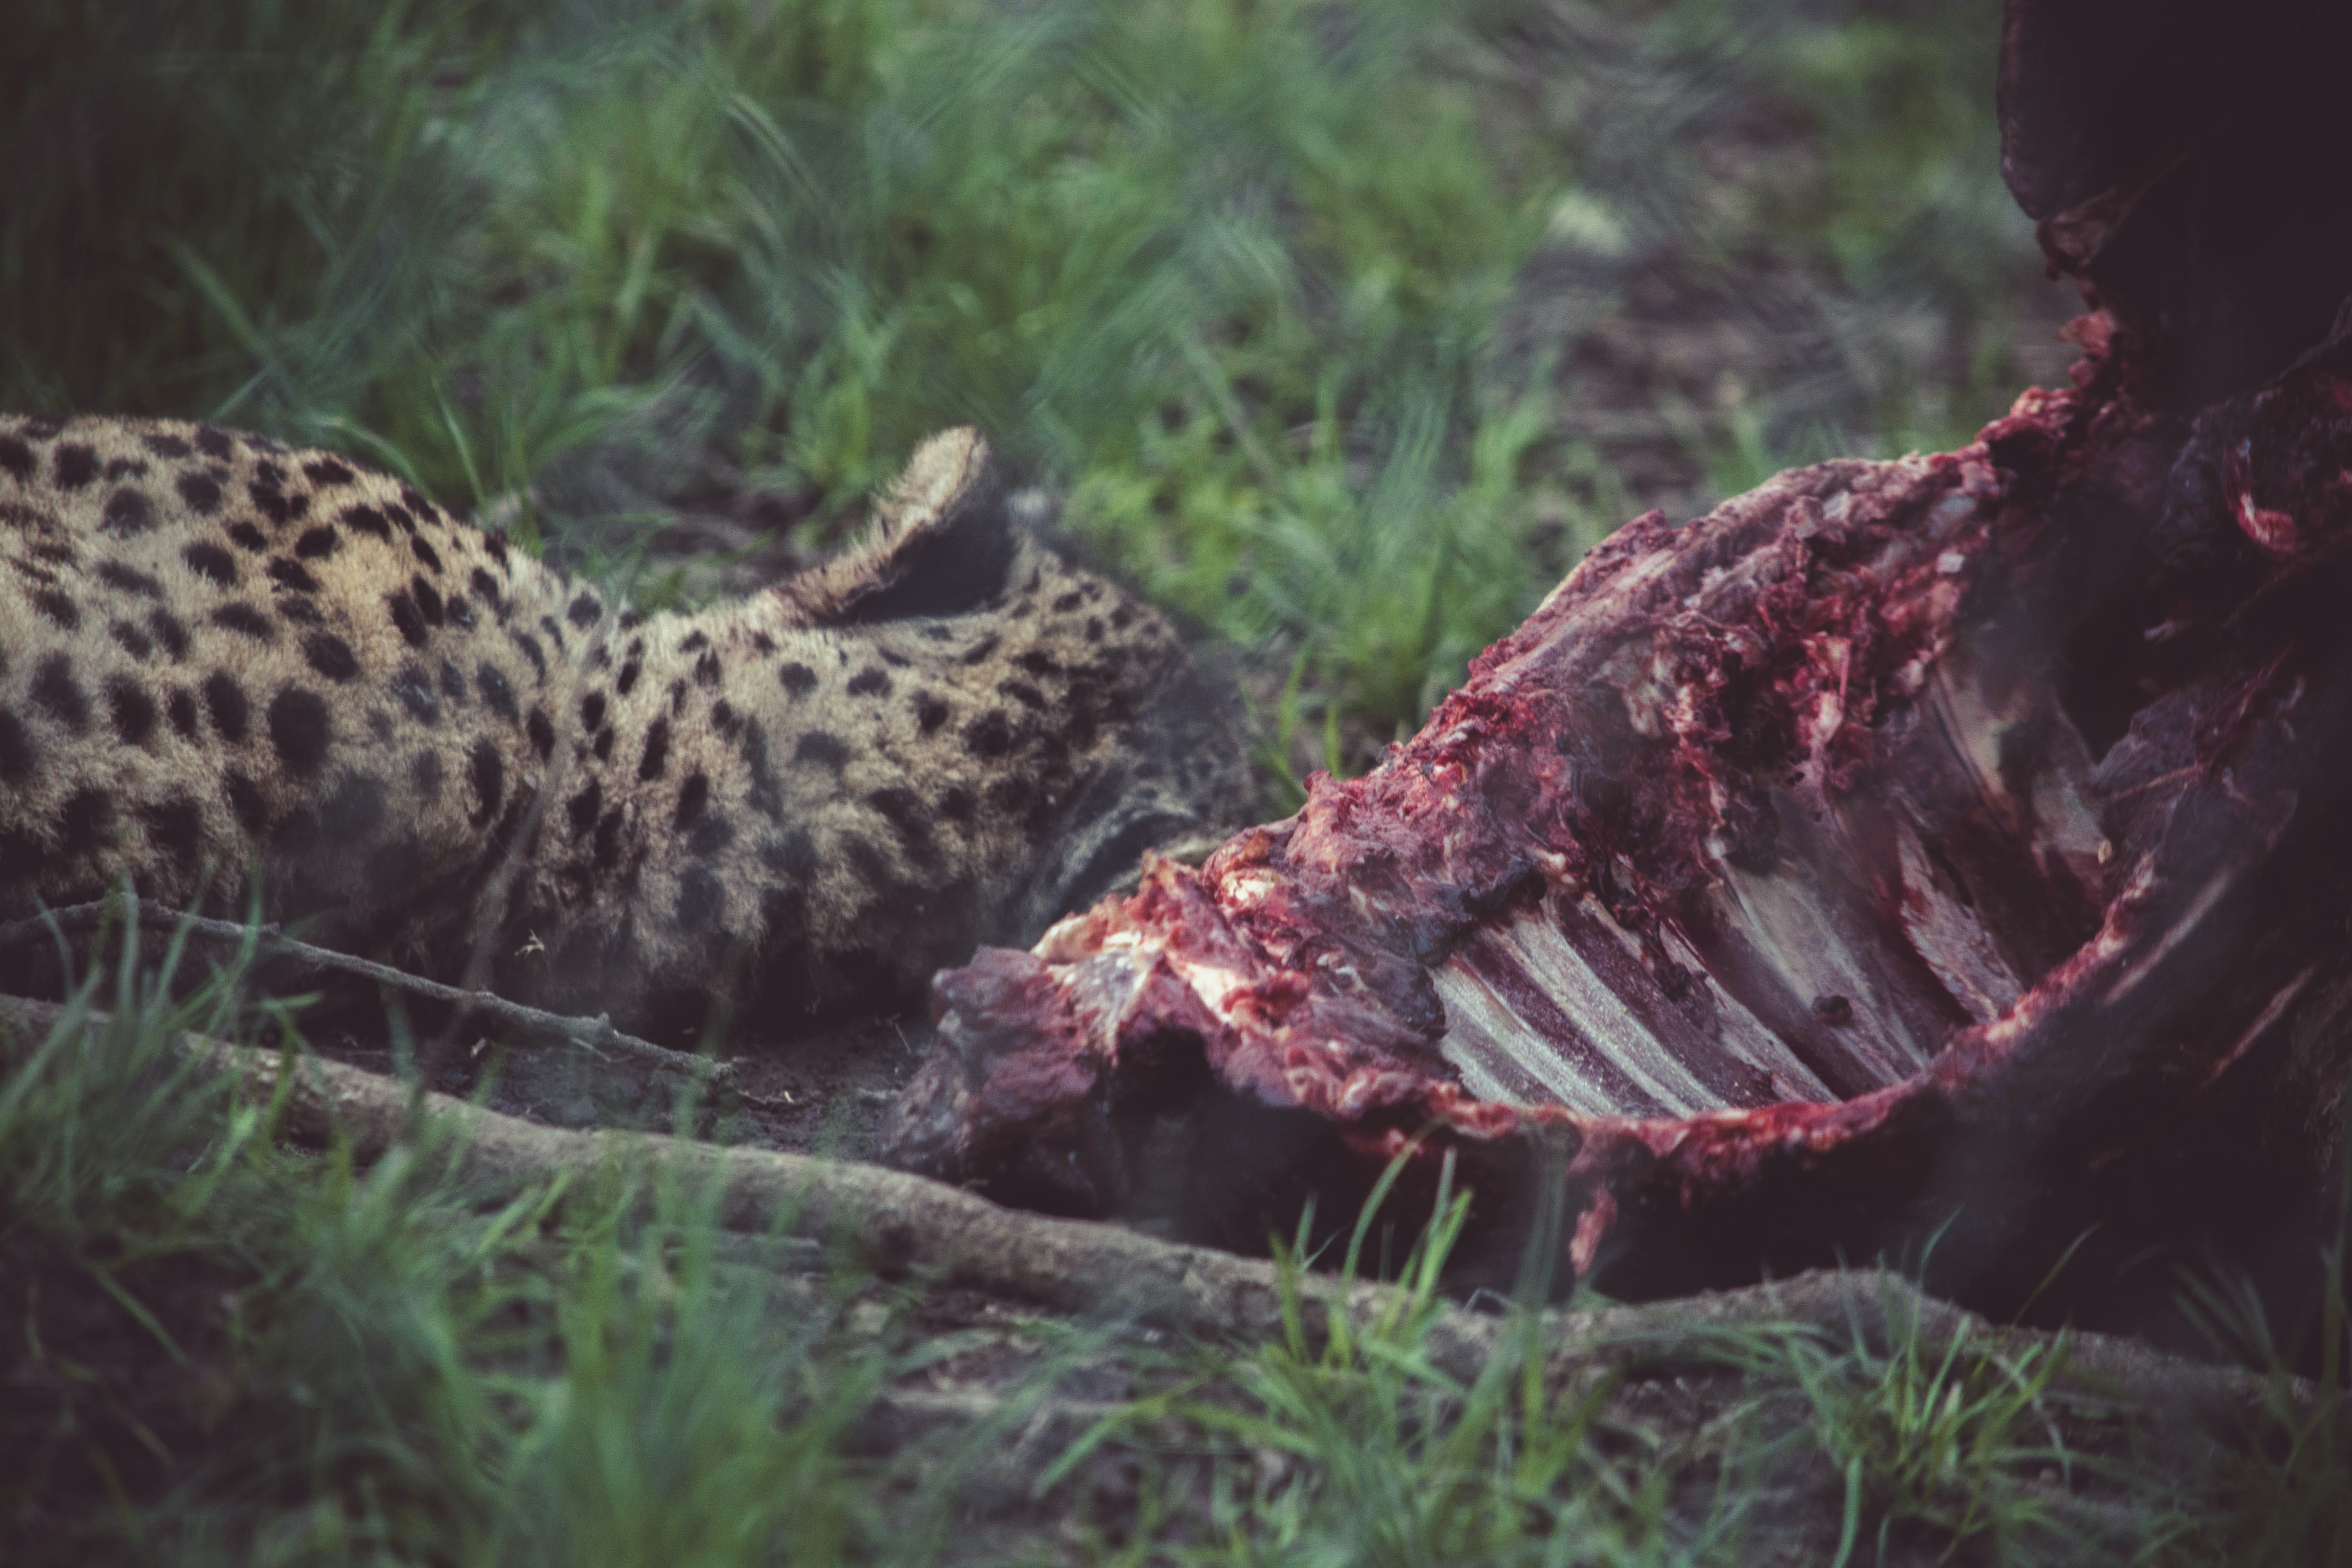 Cheetah Near Carcass